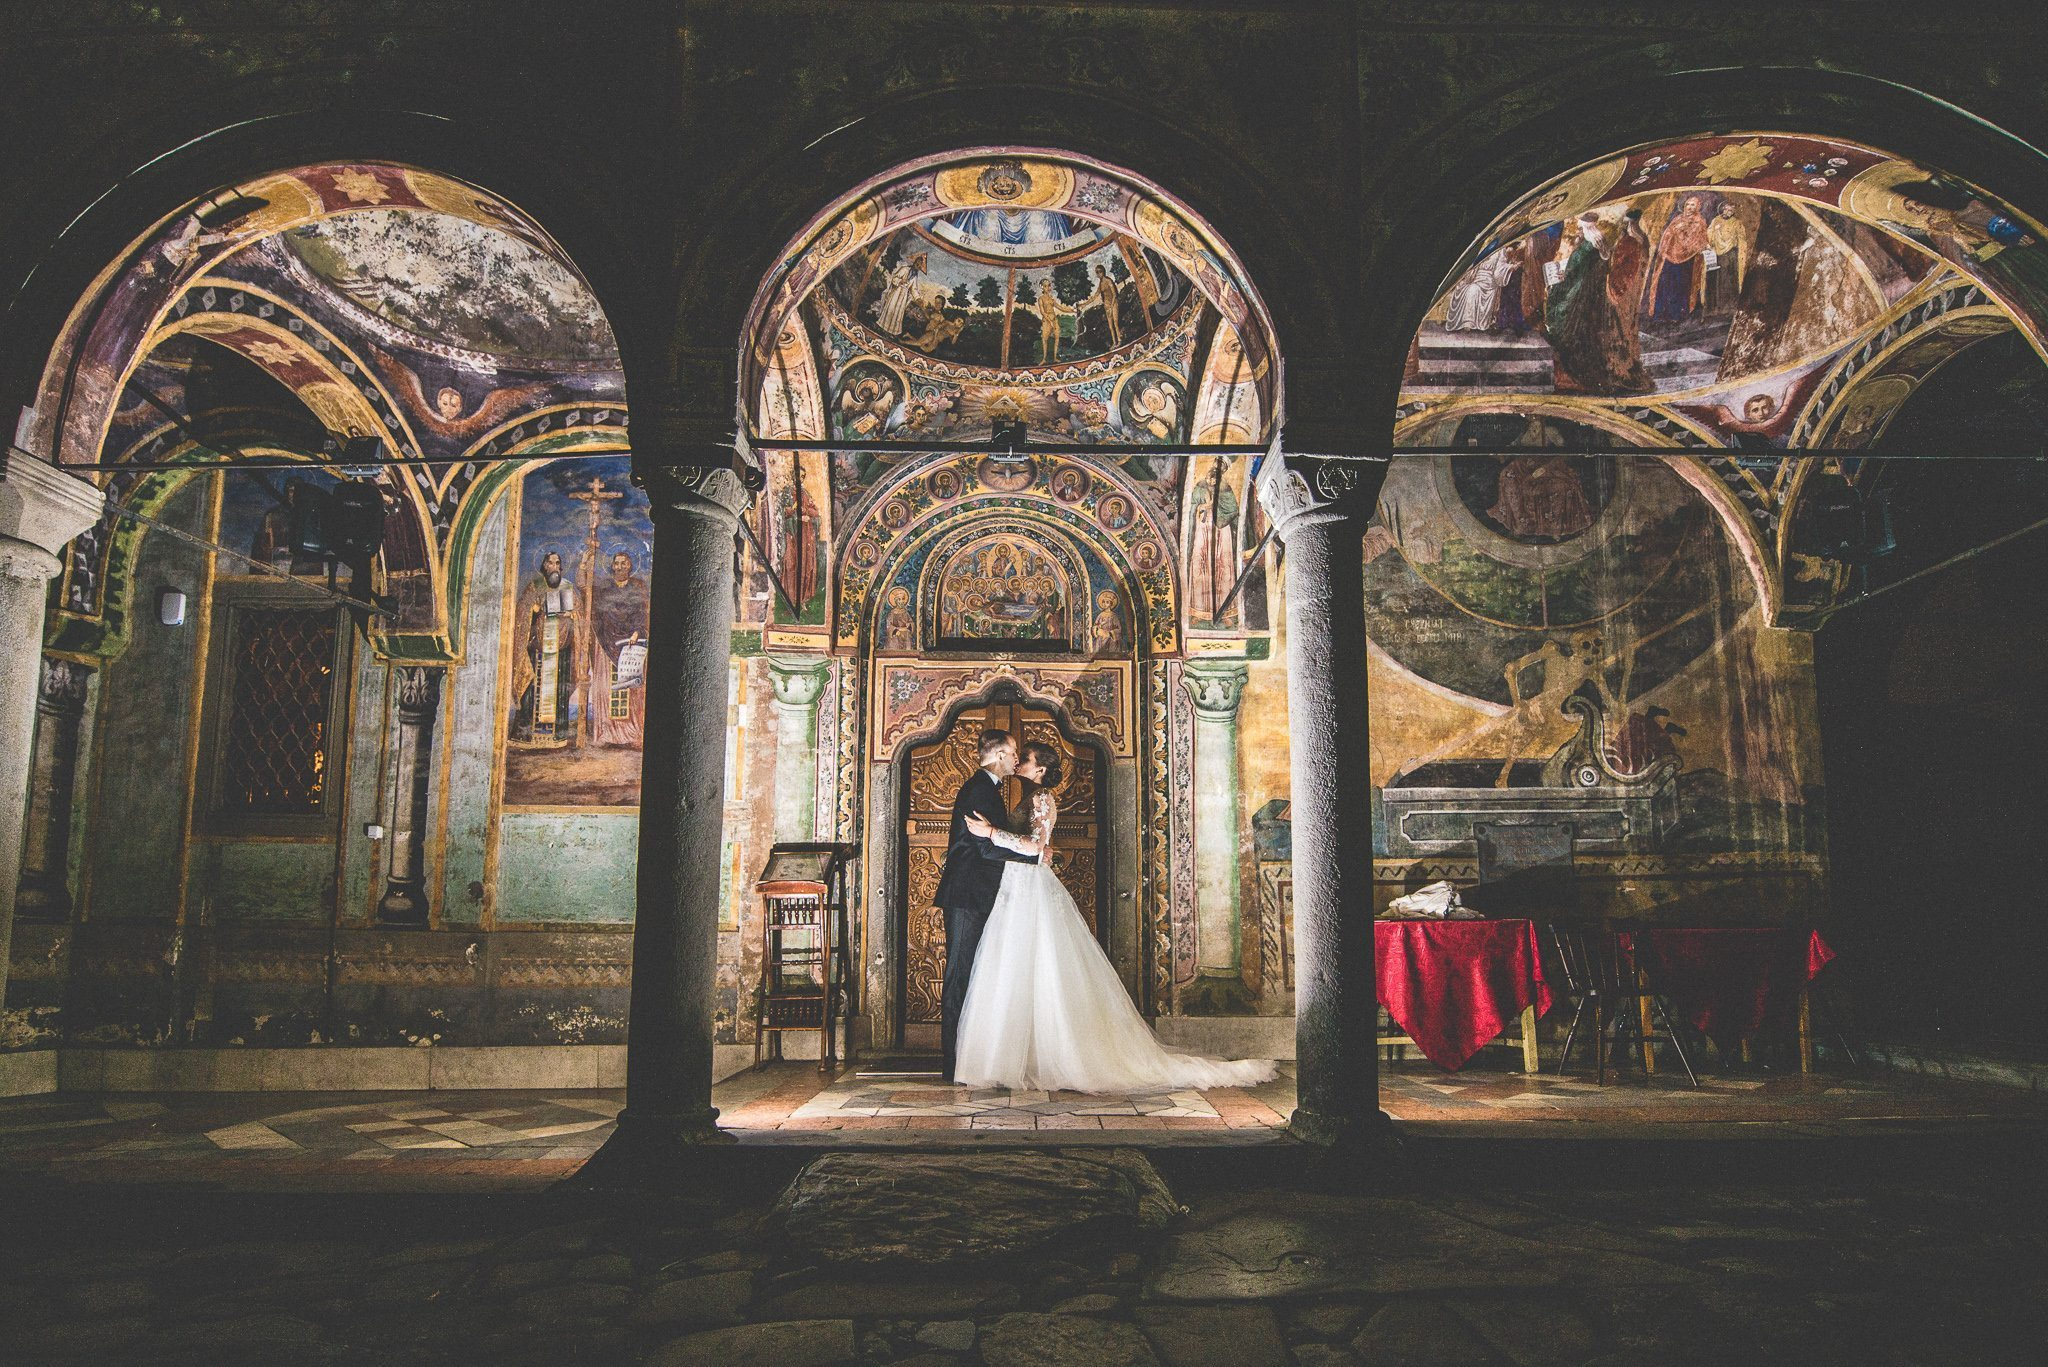 Martin and Elisaveta kiss under the arches of the monastery, among the hand painted frescoes which are lit at night